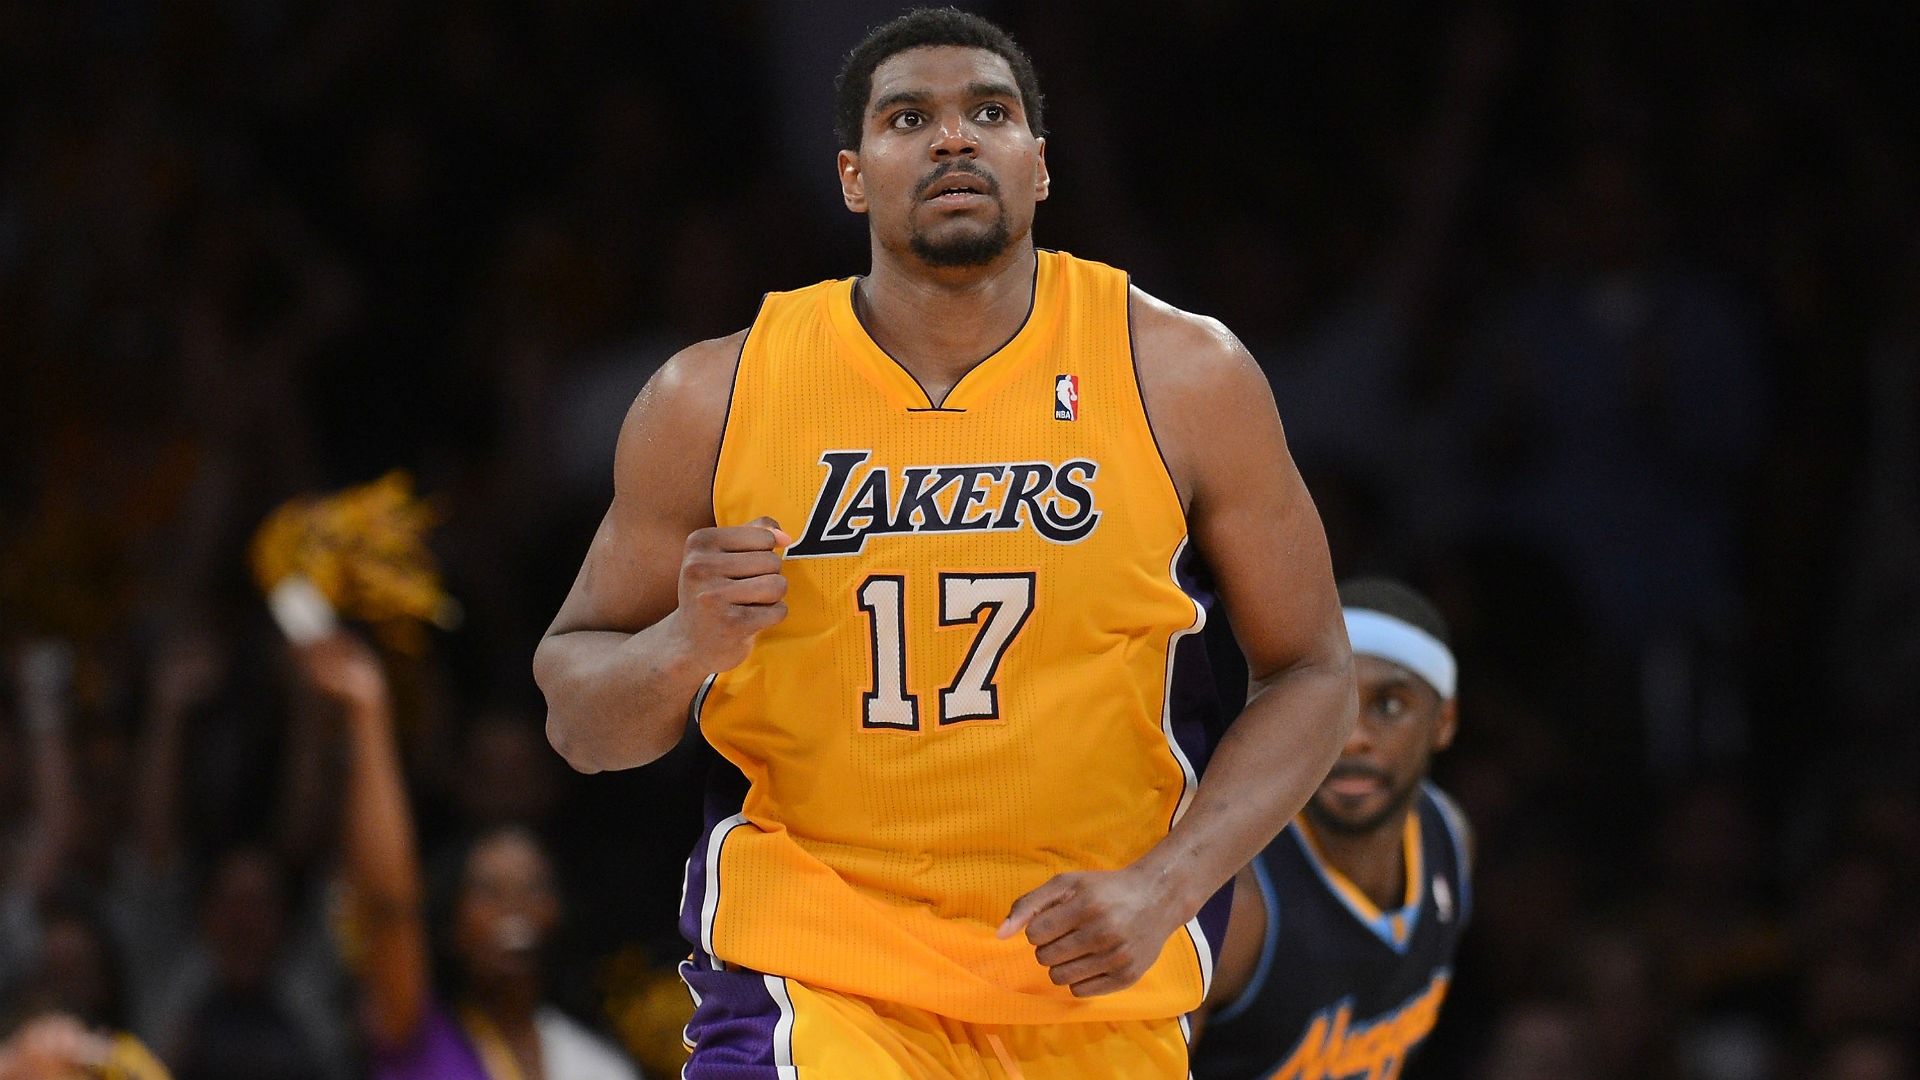 Former All-Star Center Andrew Bynum Attempting to Make NBA Comeback